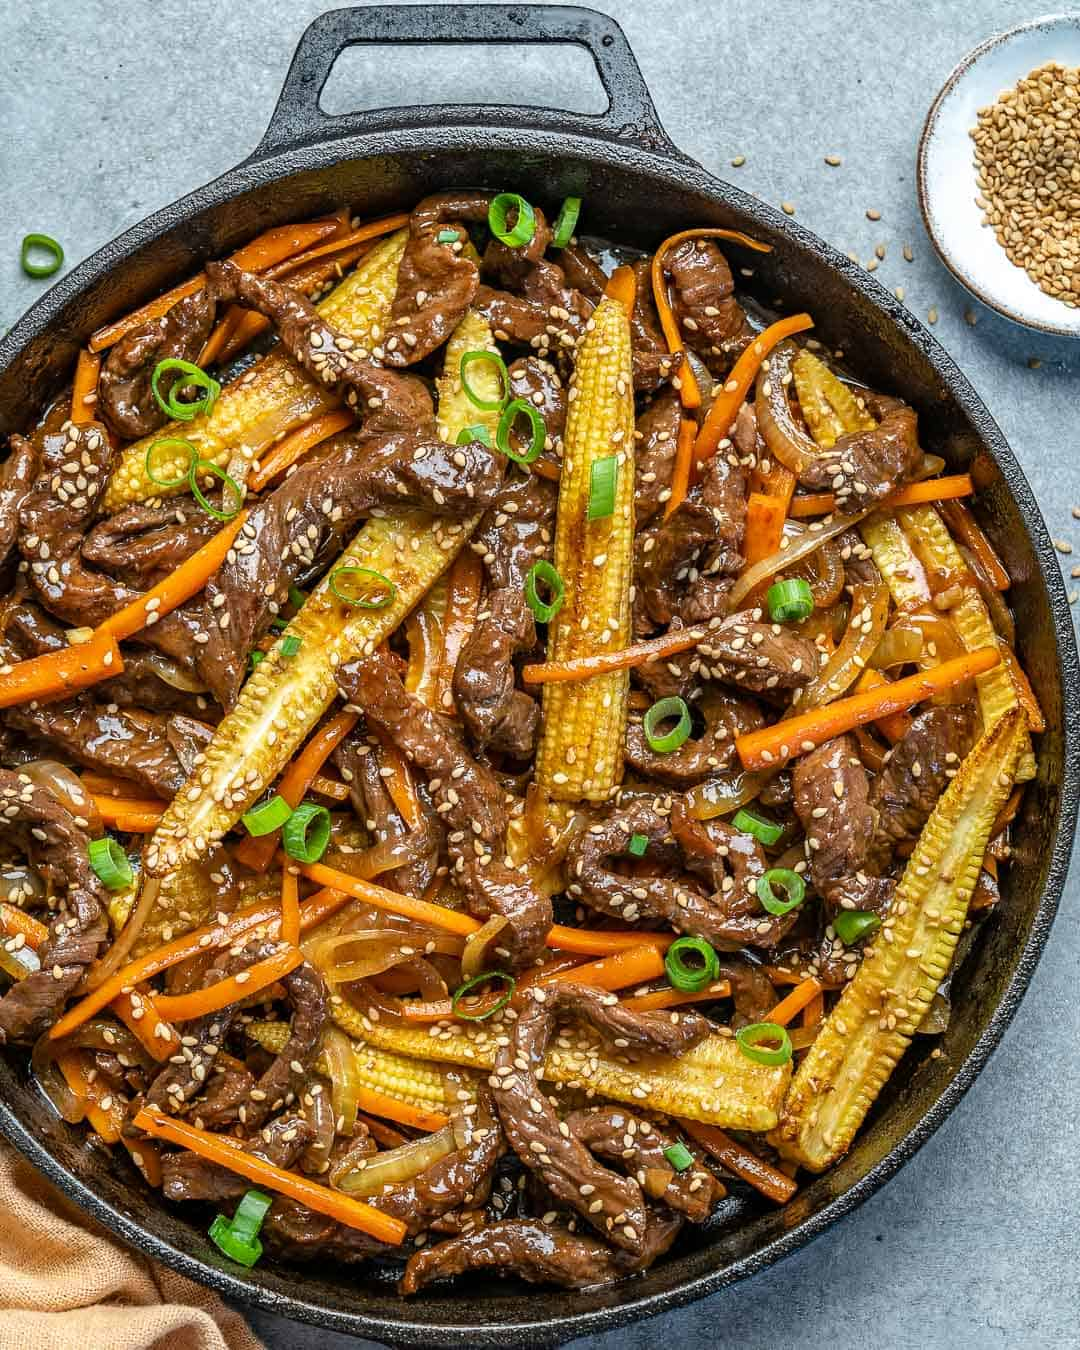 Easy And Healthy Beef Stir Fry Healthy Fitness Meals